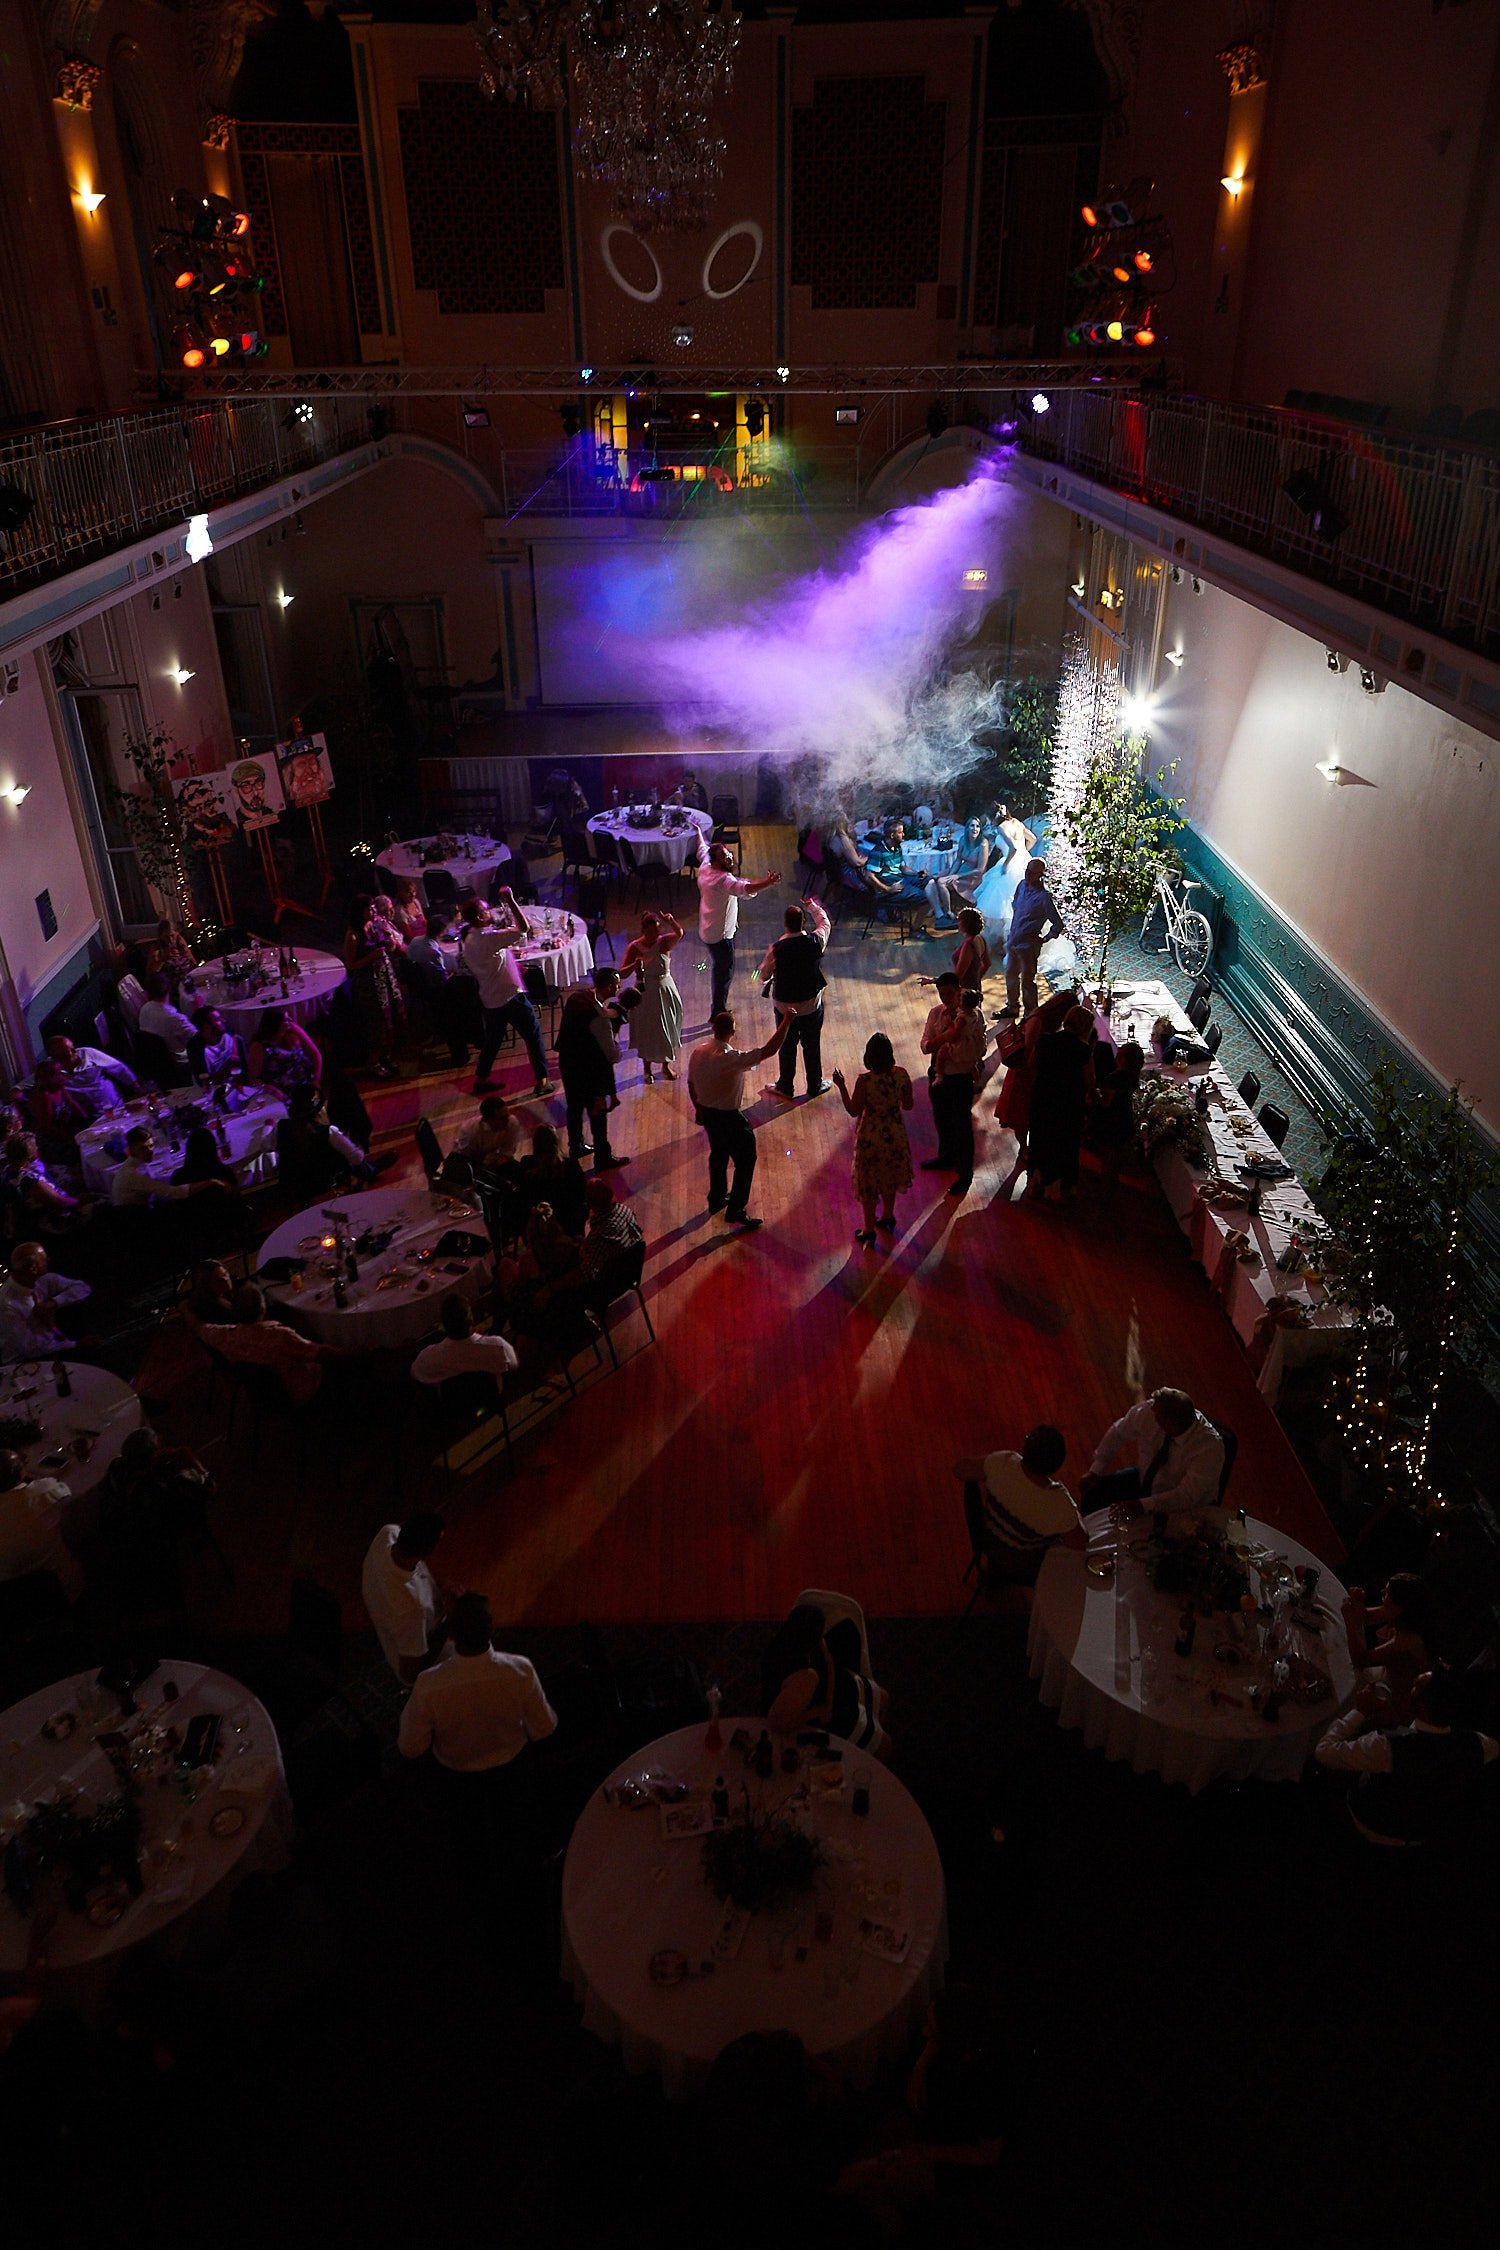 A shot from the balcony of Louth Town Hall wedding venue while guests dance